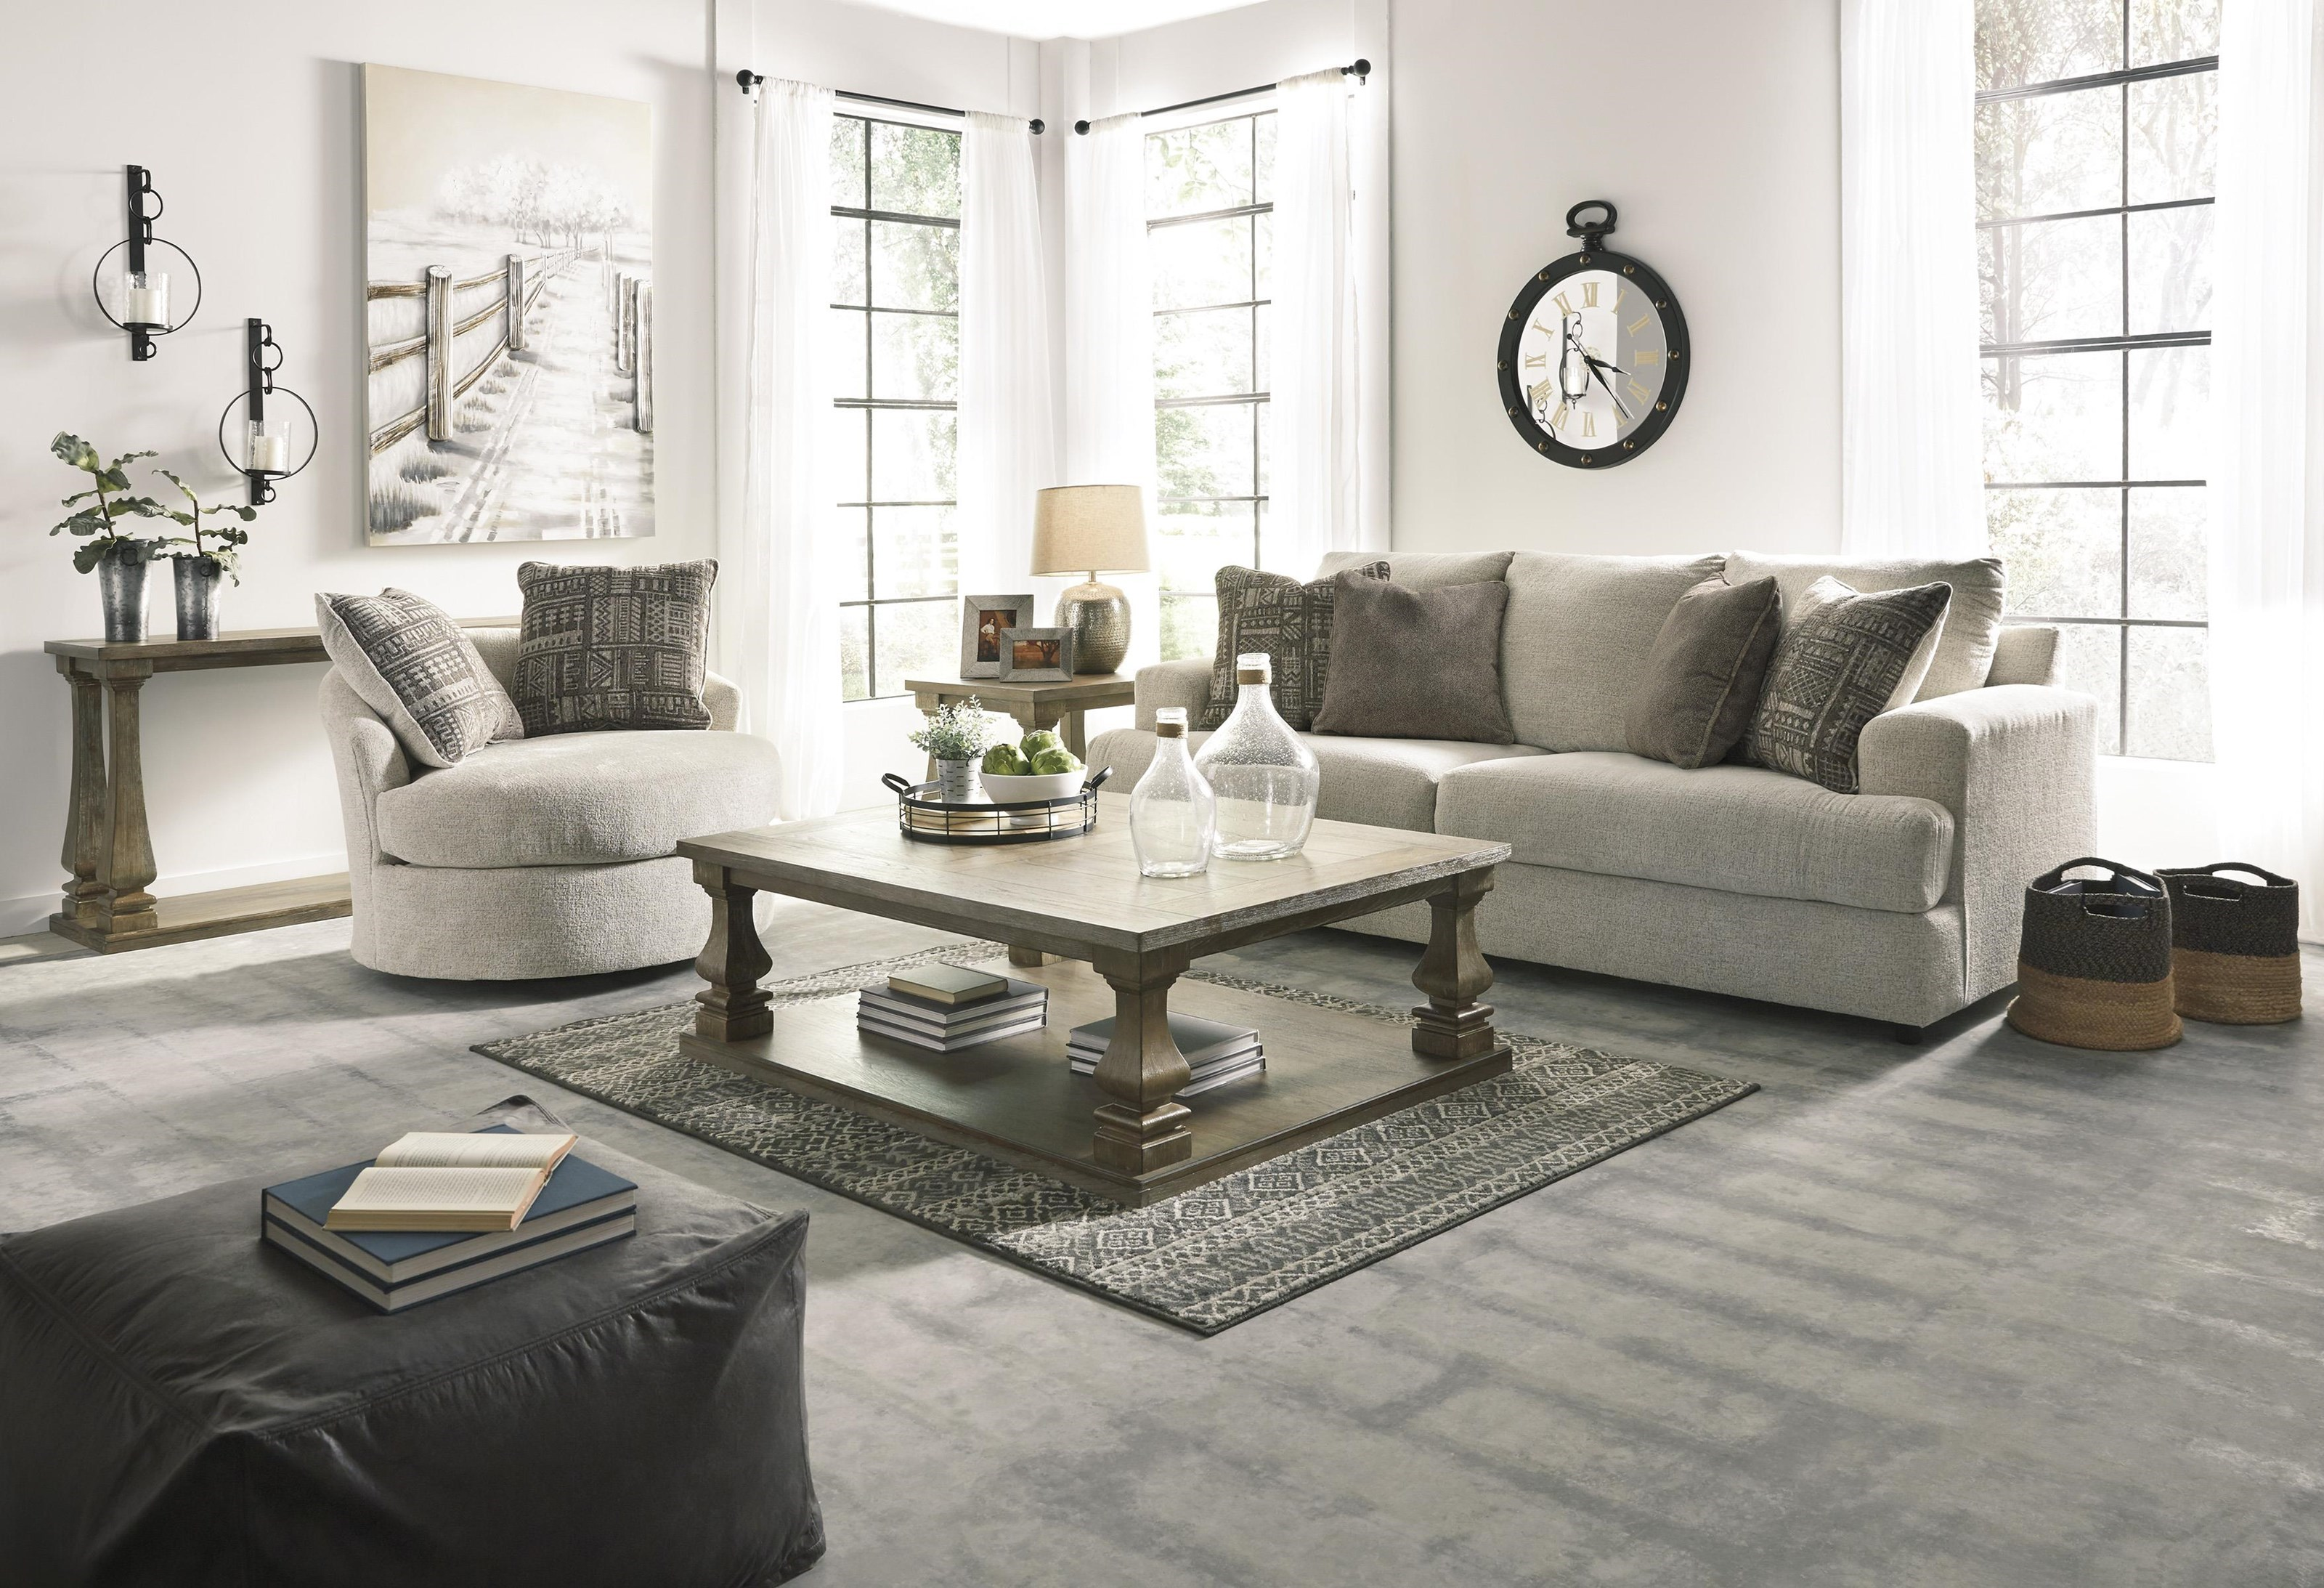 Soletren Sofa Chair And Swivel Accent Chair Set